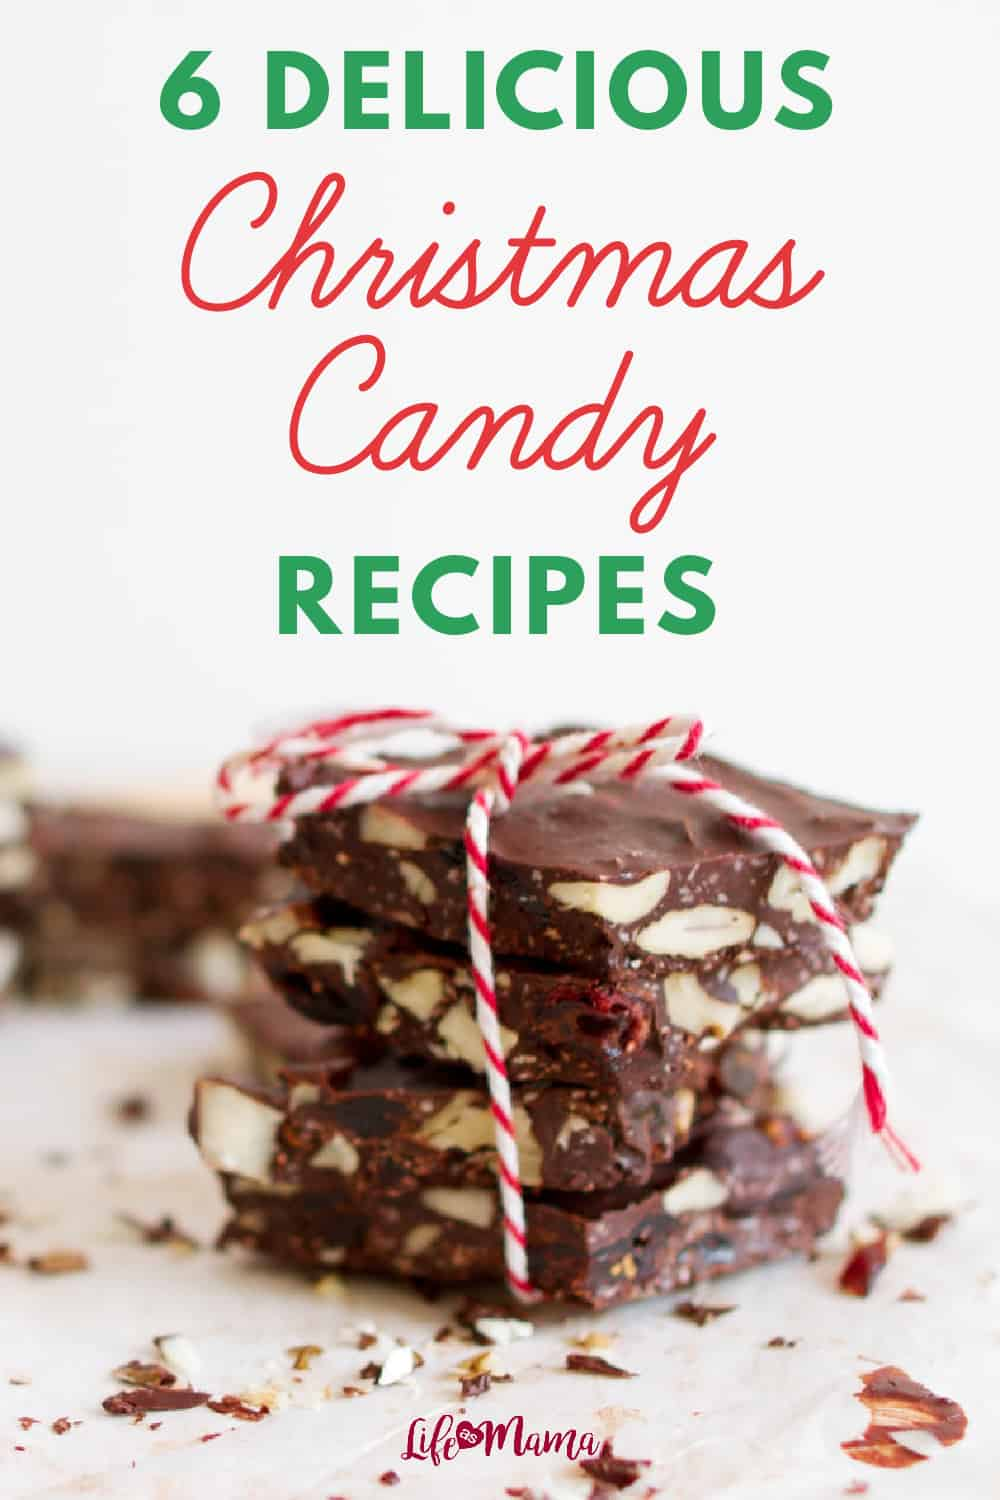 6 Delicious Christmas Candy Recipes